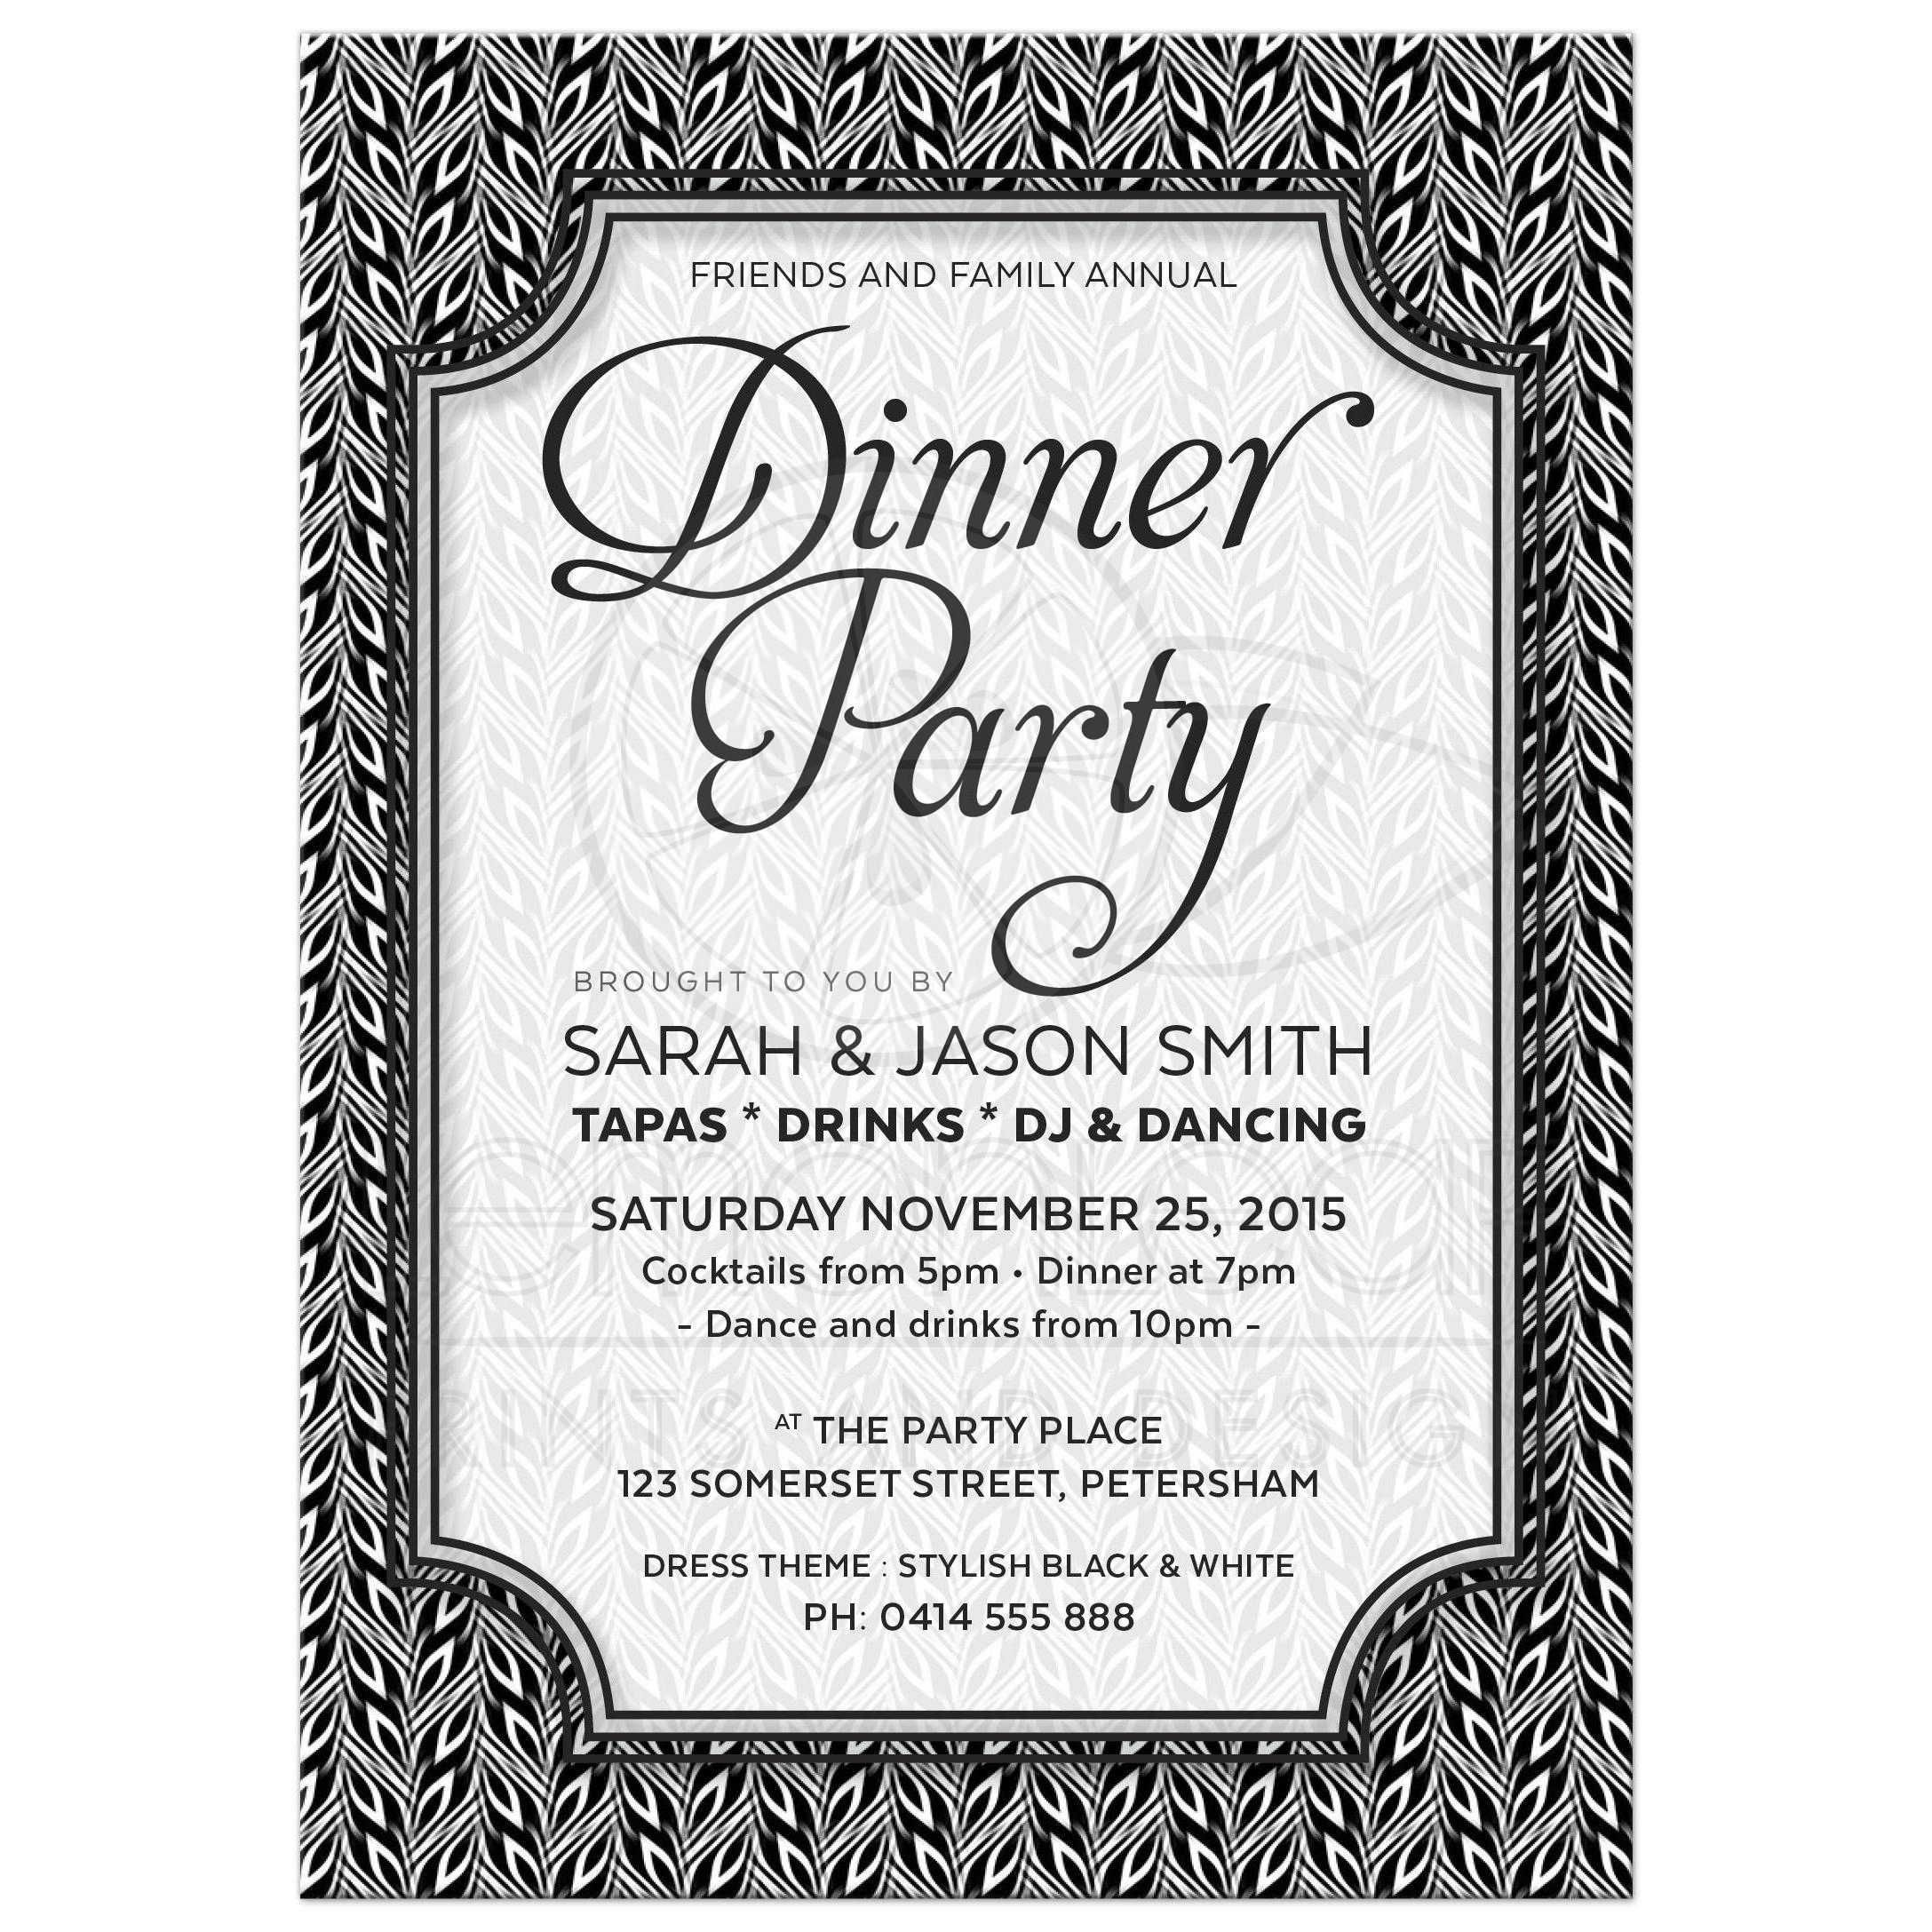 anniversary dinner party invitations invitations card template pinterest anniversary. Black Bedroom Furniture Sets. Home Design Ideas